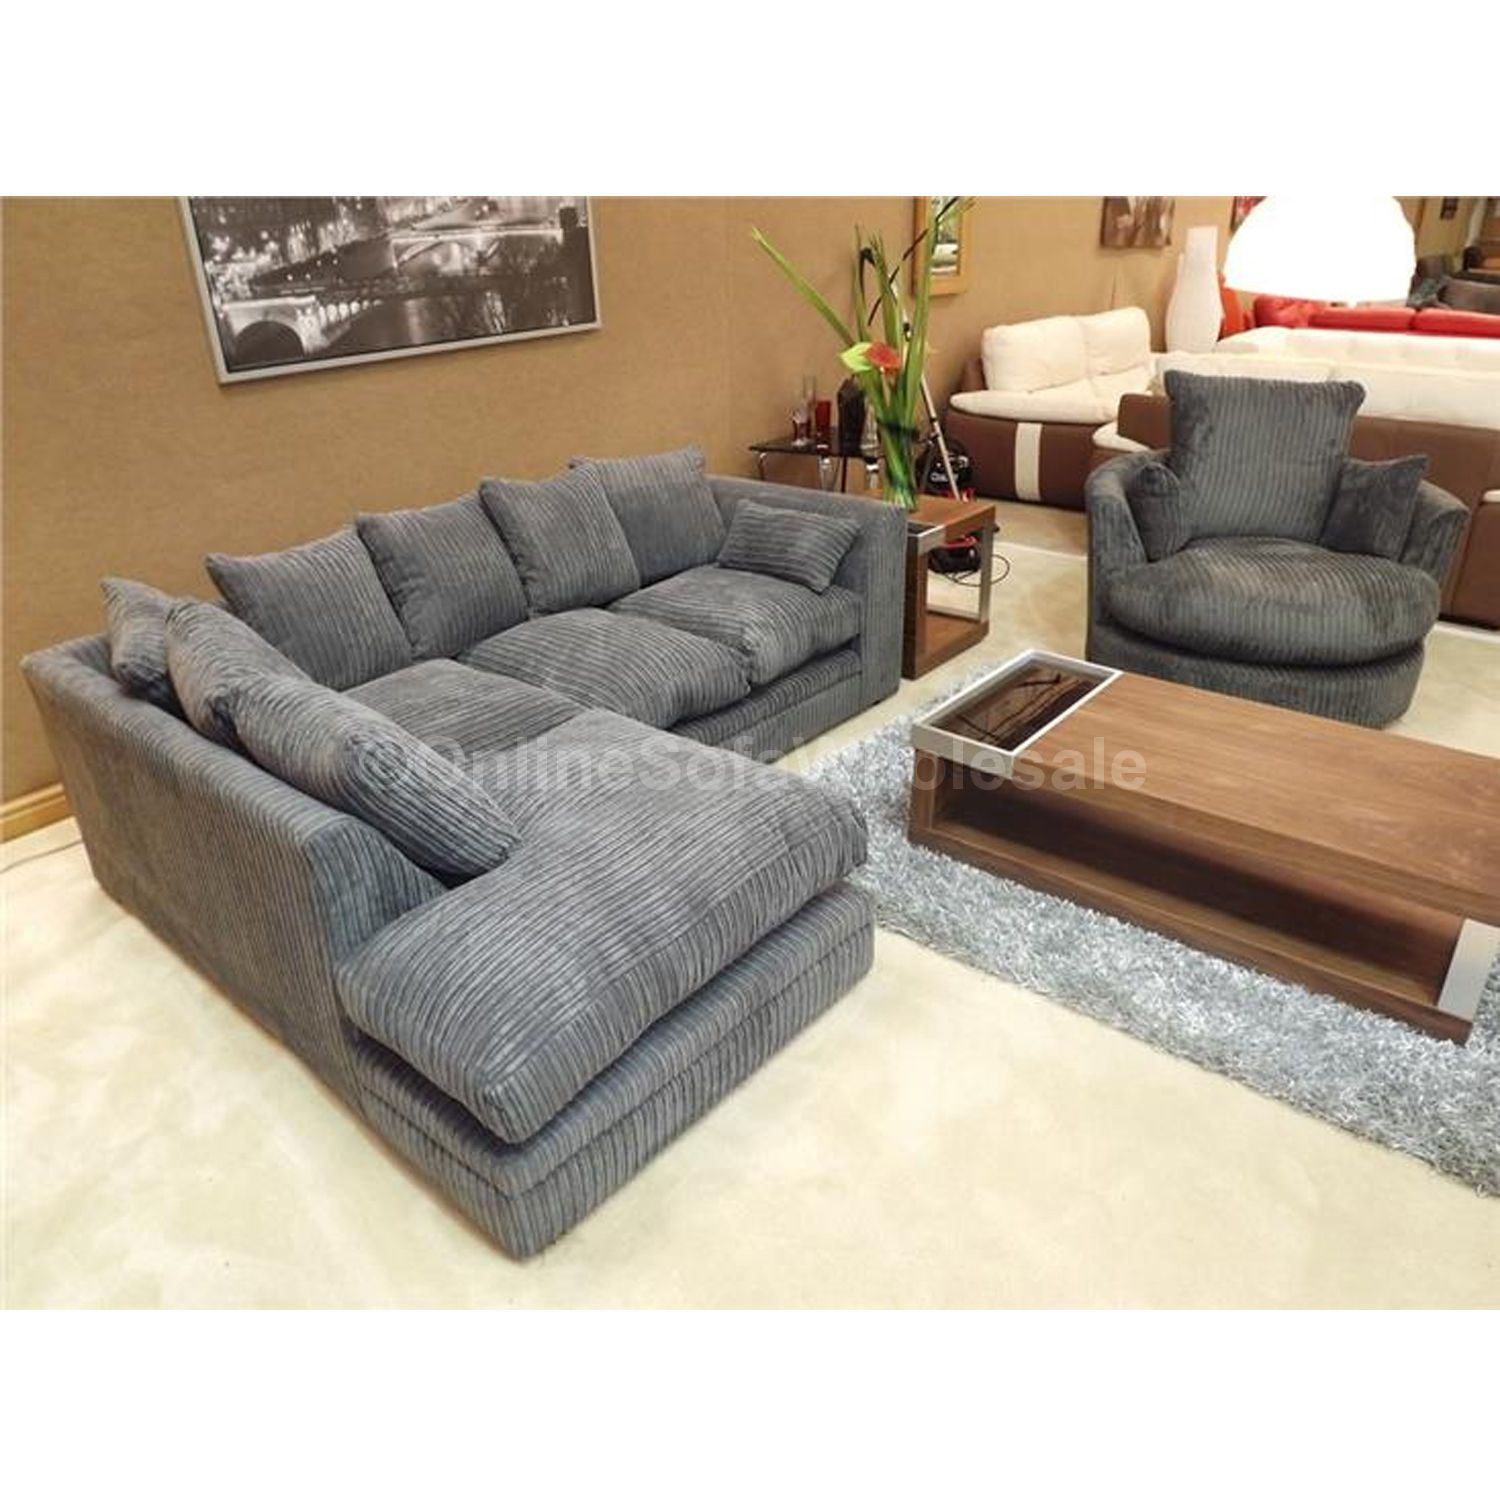 Details about Dylan Corner Sofa Left Hand Plus Swivel Chair All